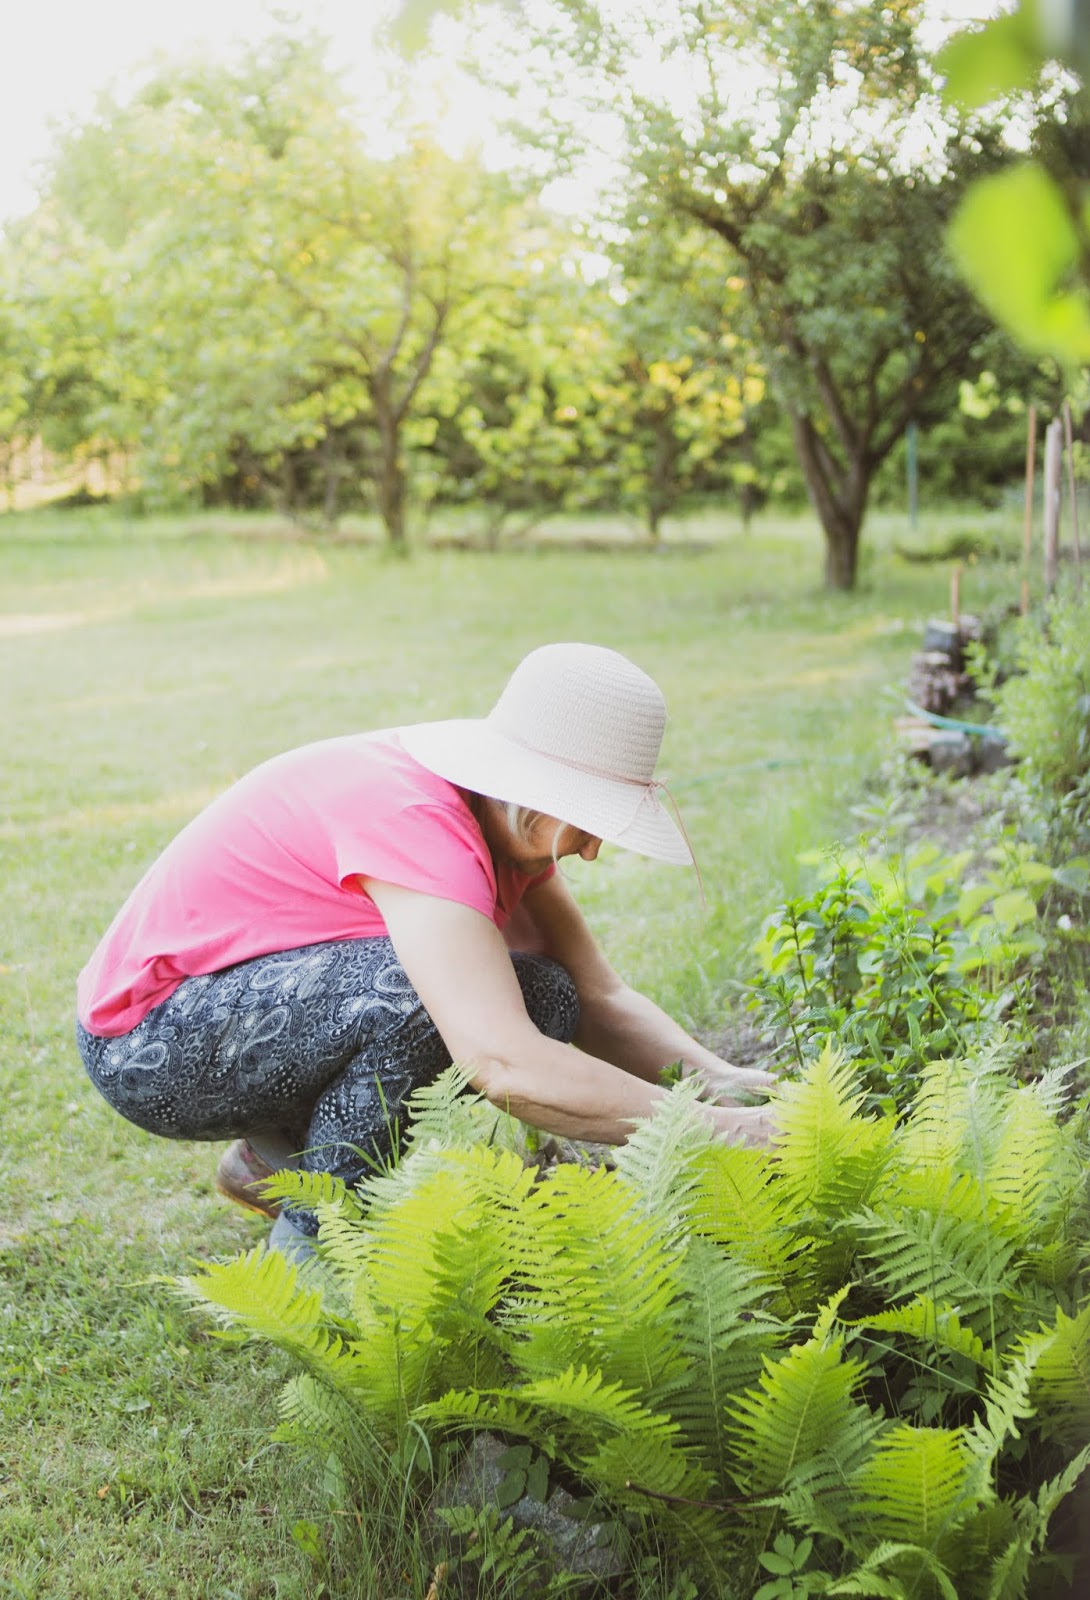 Gardening for Health and Wellness: Start a Garden and Harvest the Health Benefits